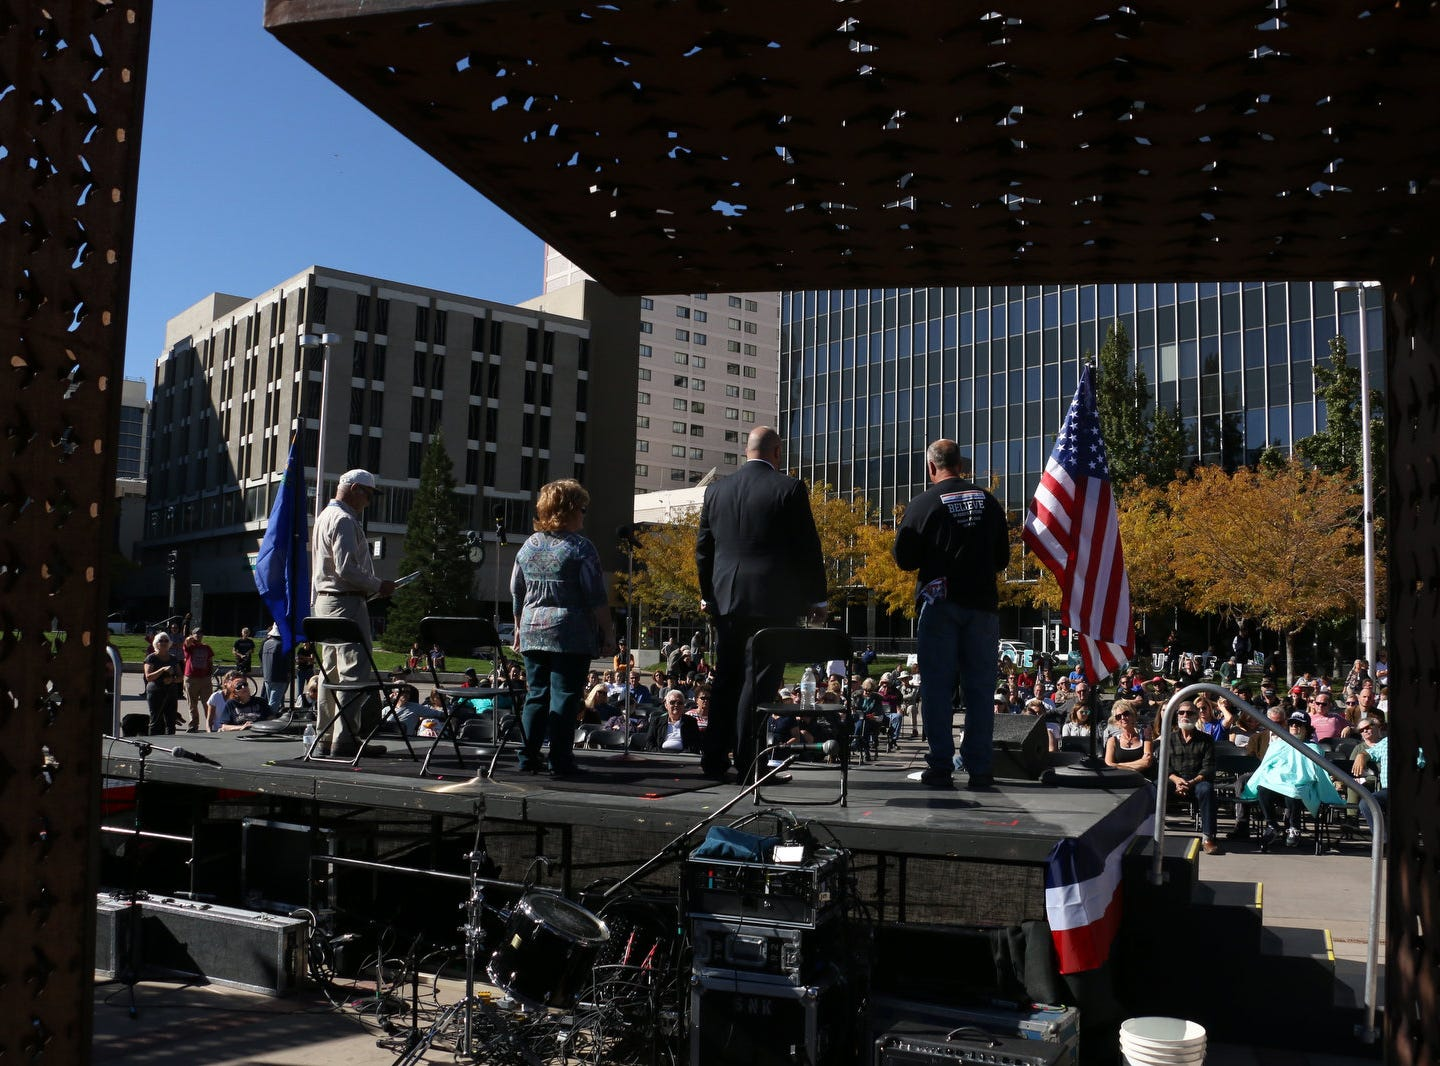 The RenoElections.org public debate at City Plaza in Reno on Oct. 20, 2018.